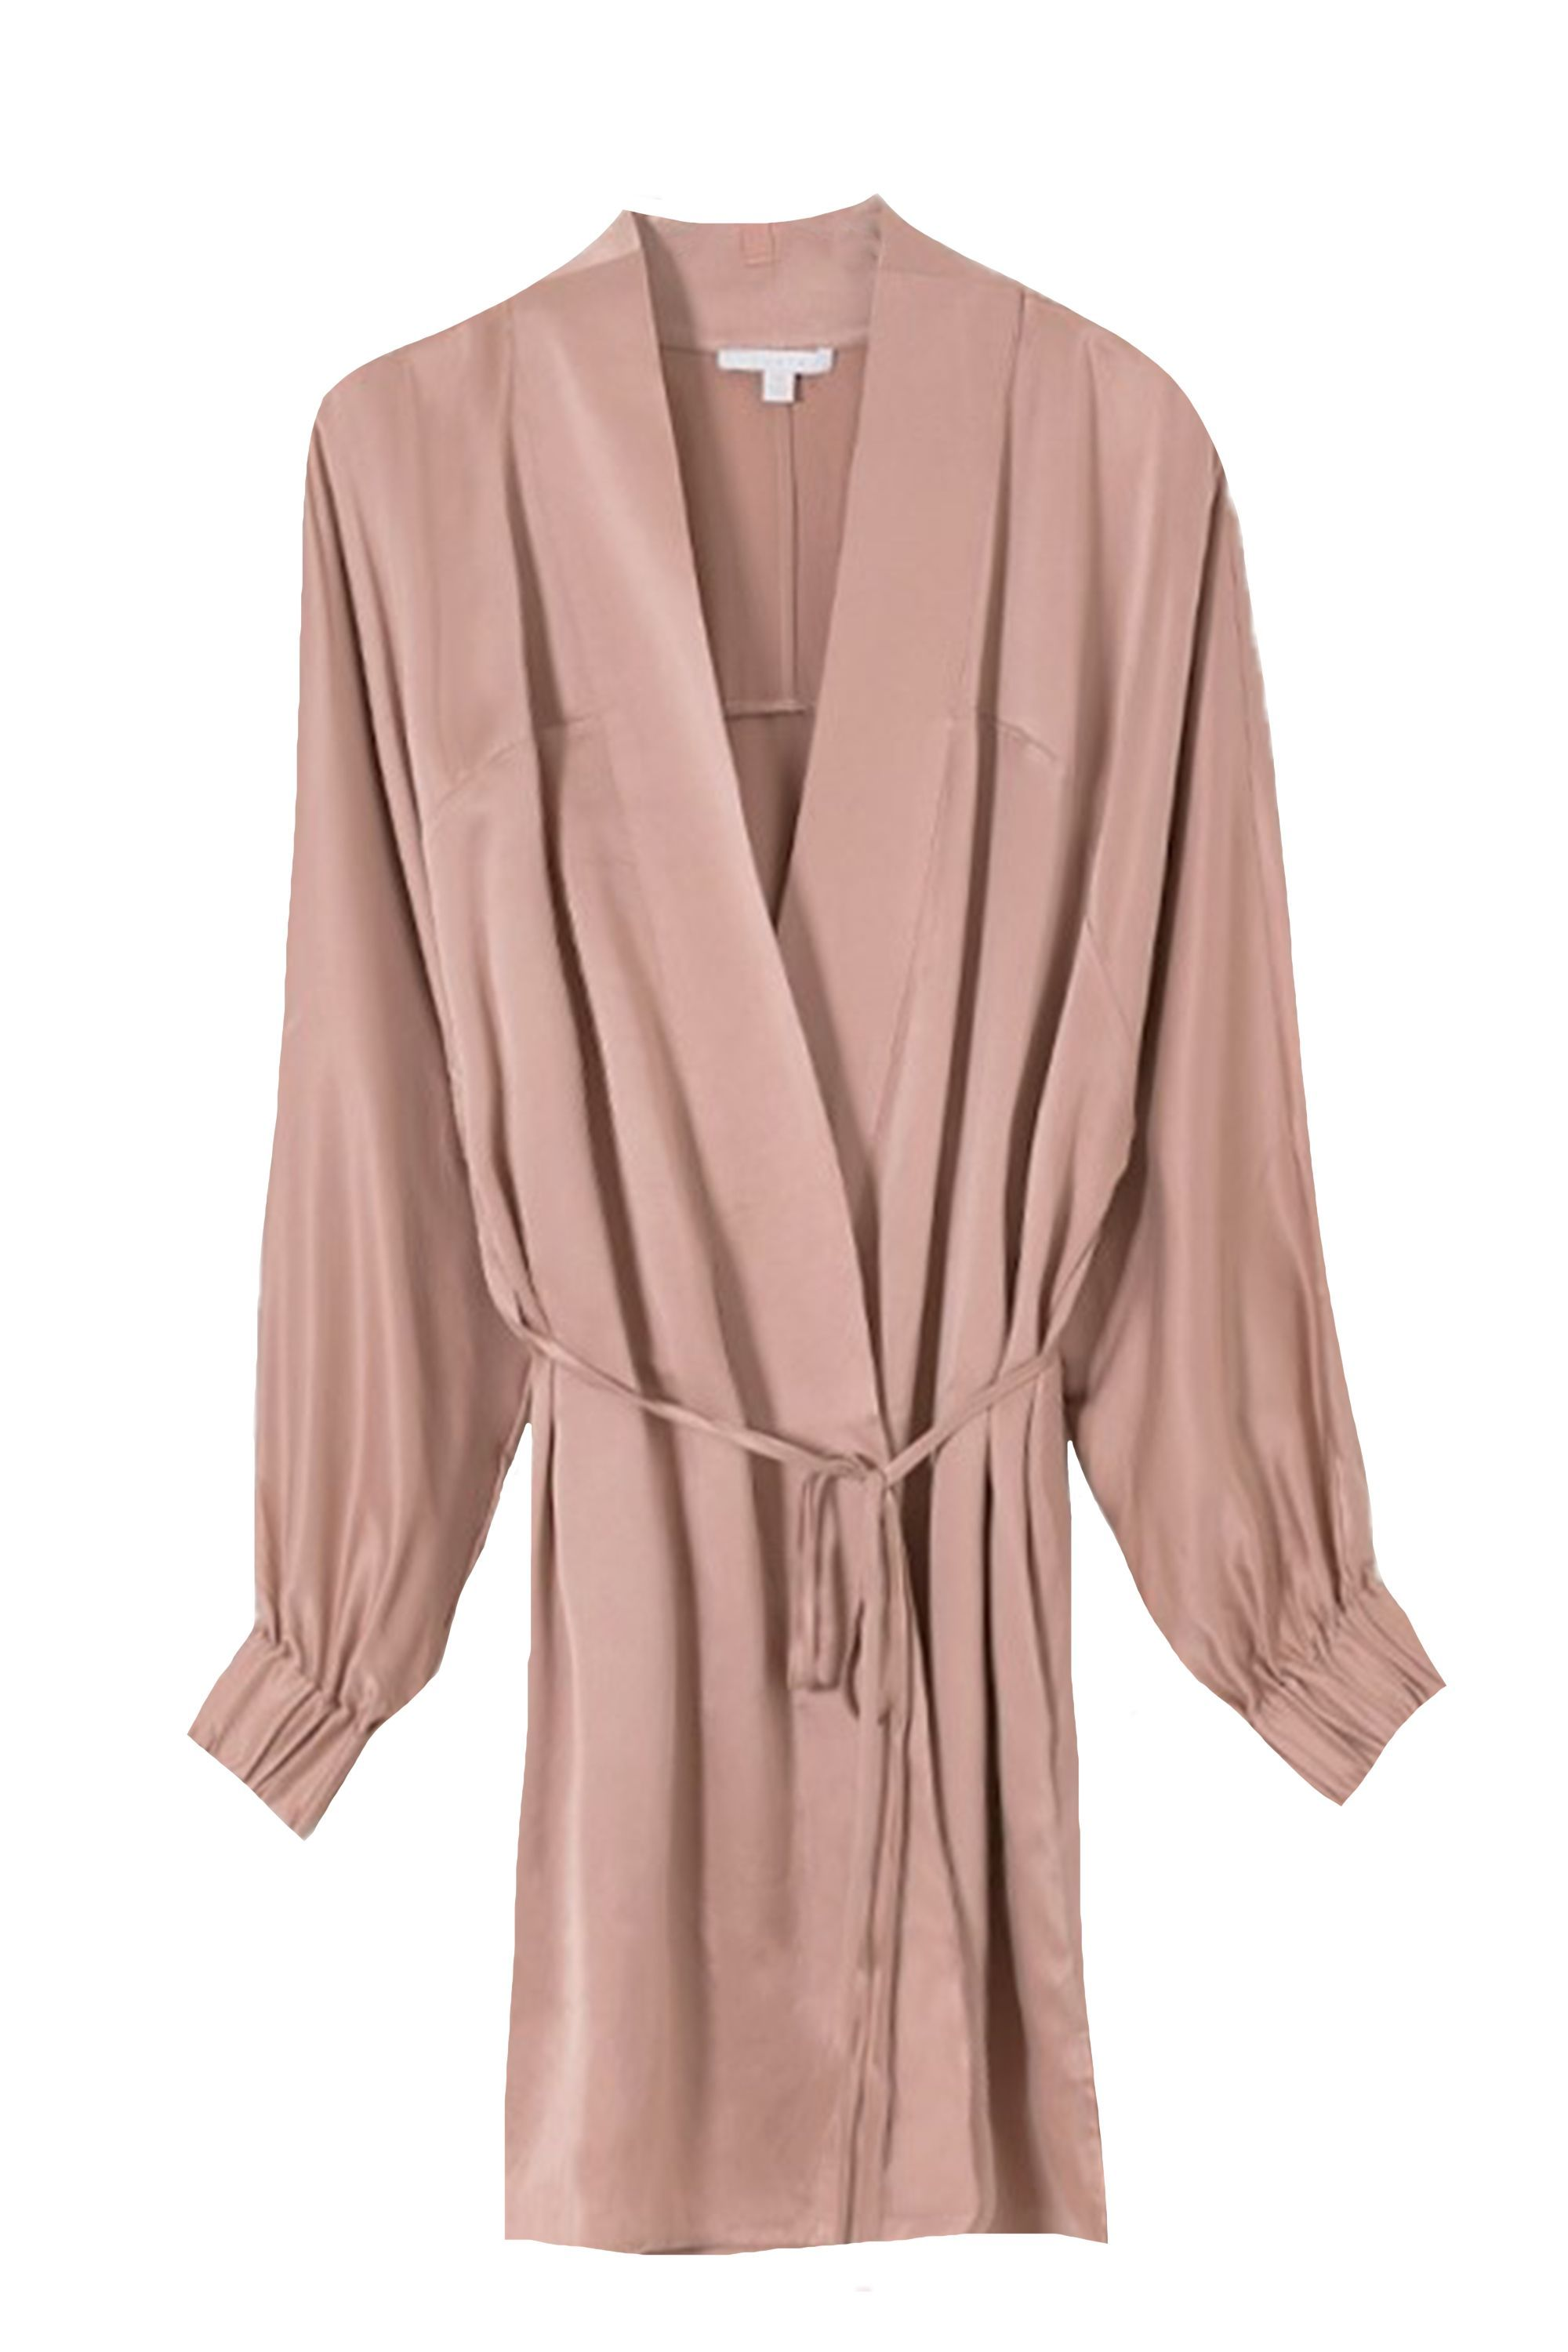 17 Best Robes For Women The Most Comfortable Robes That Make You Forget Real Clothes Exist